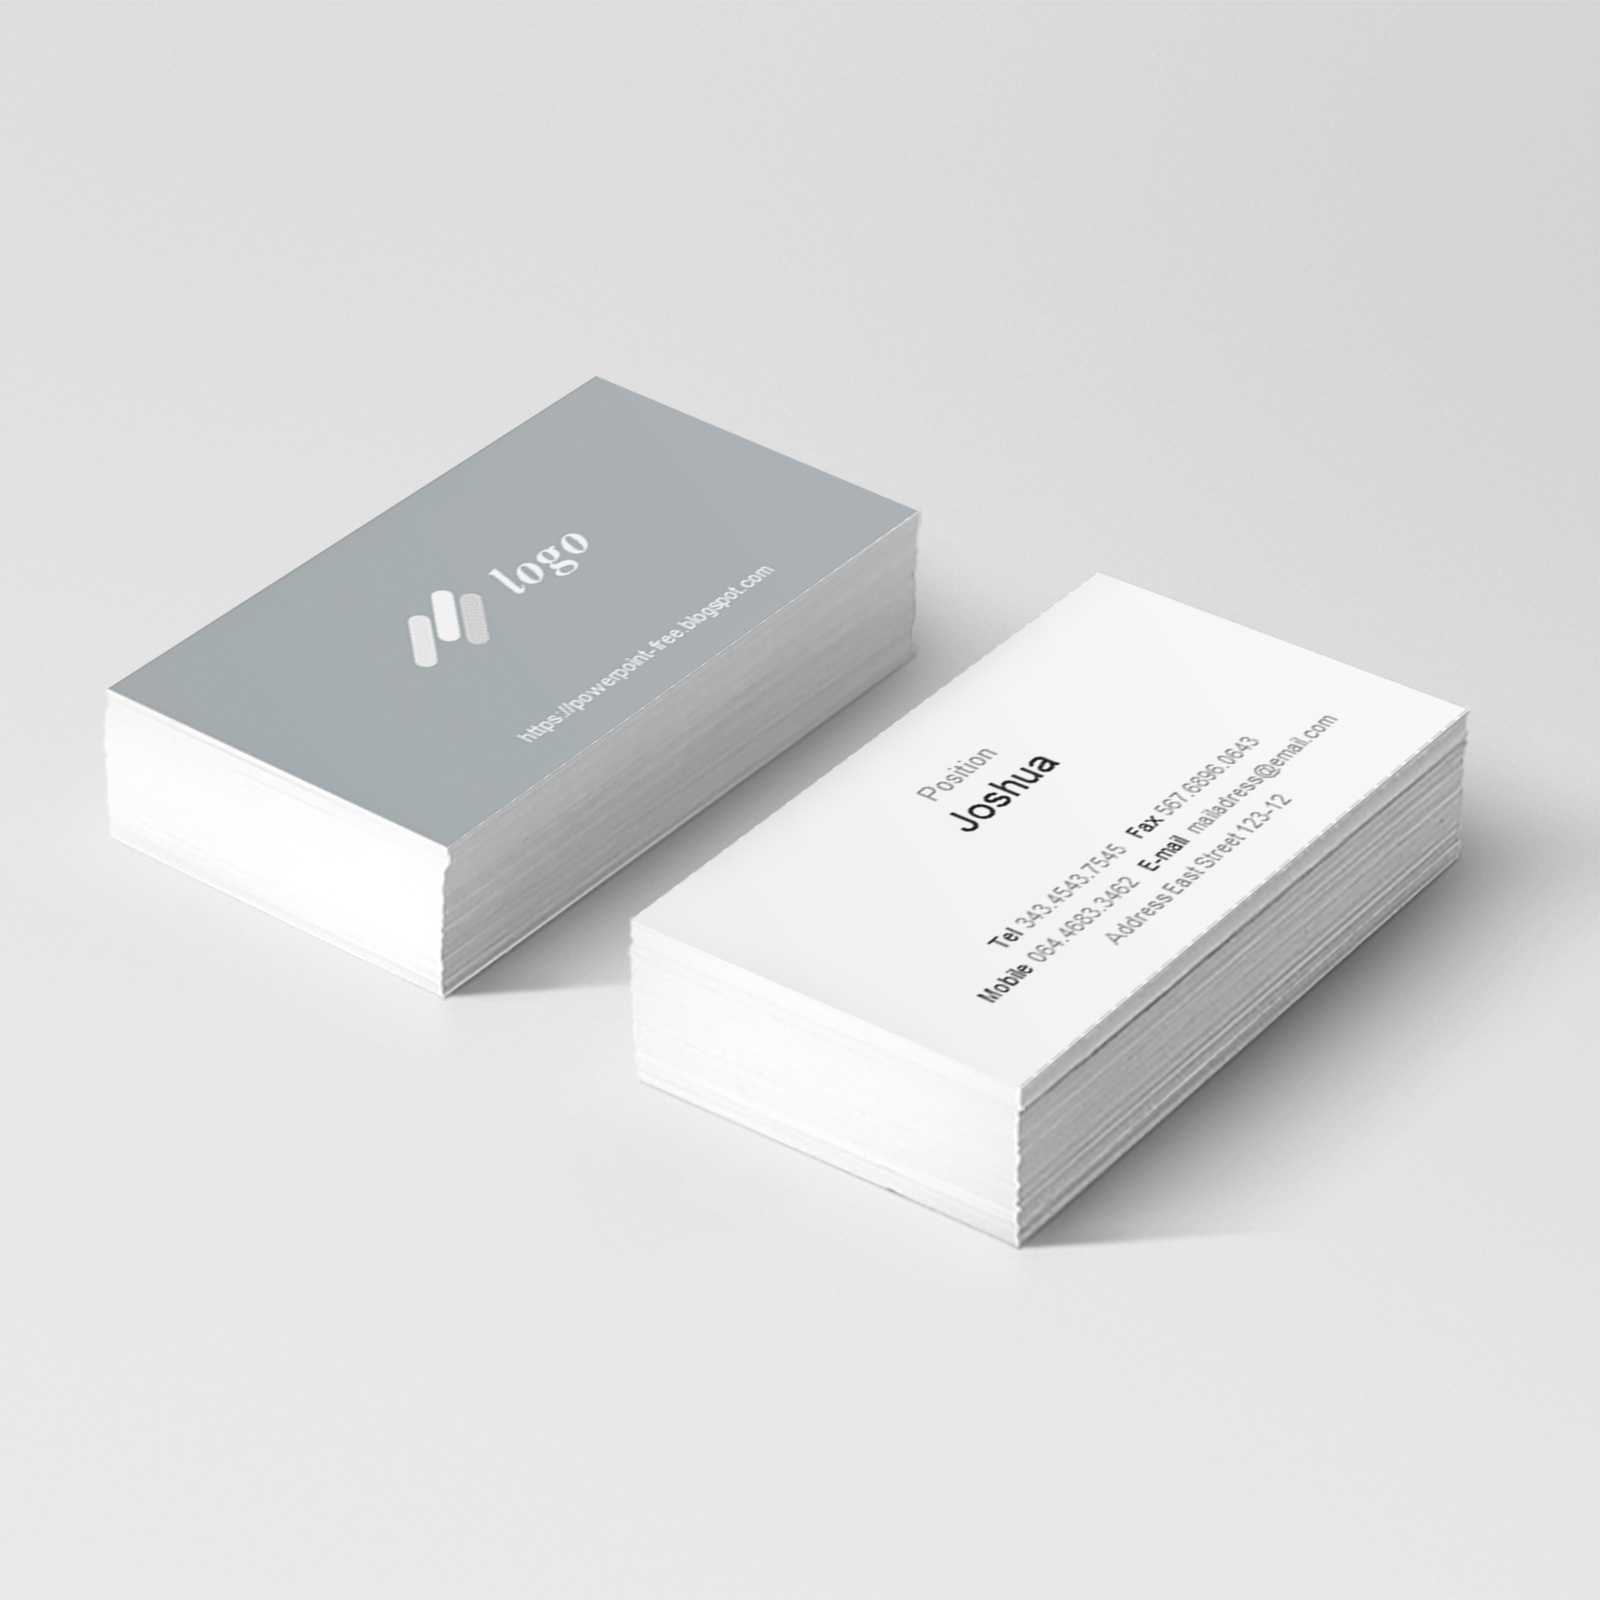 Basic Business Card Powerpoint Templates - Powerpoint Free Intended For Business Card Template Powerpoint Free